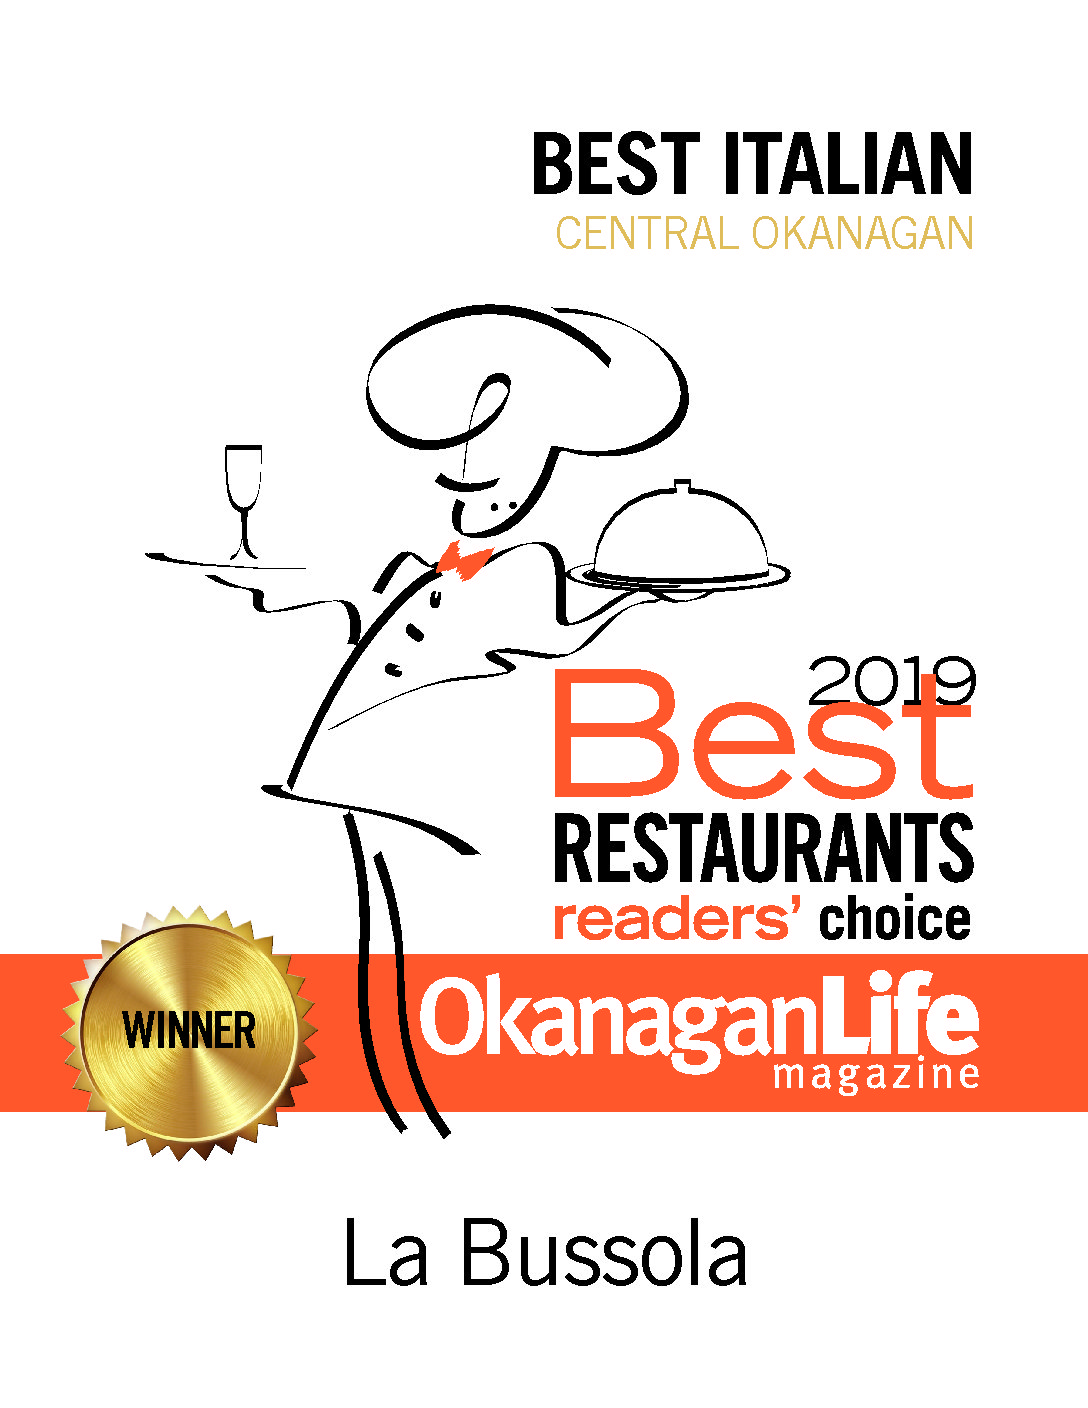 Best Italian restaurants in the Okanagan